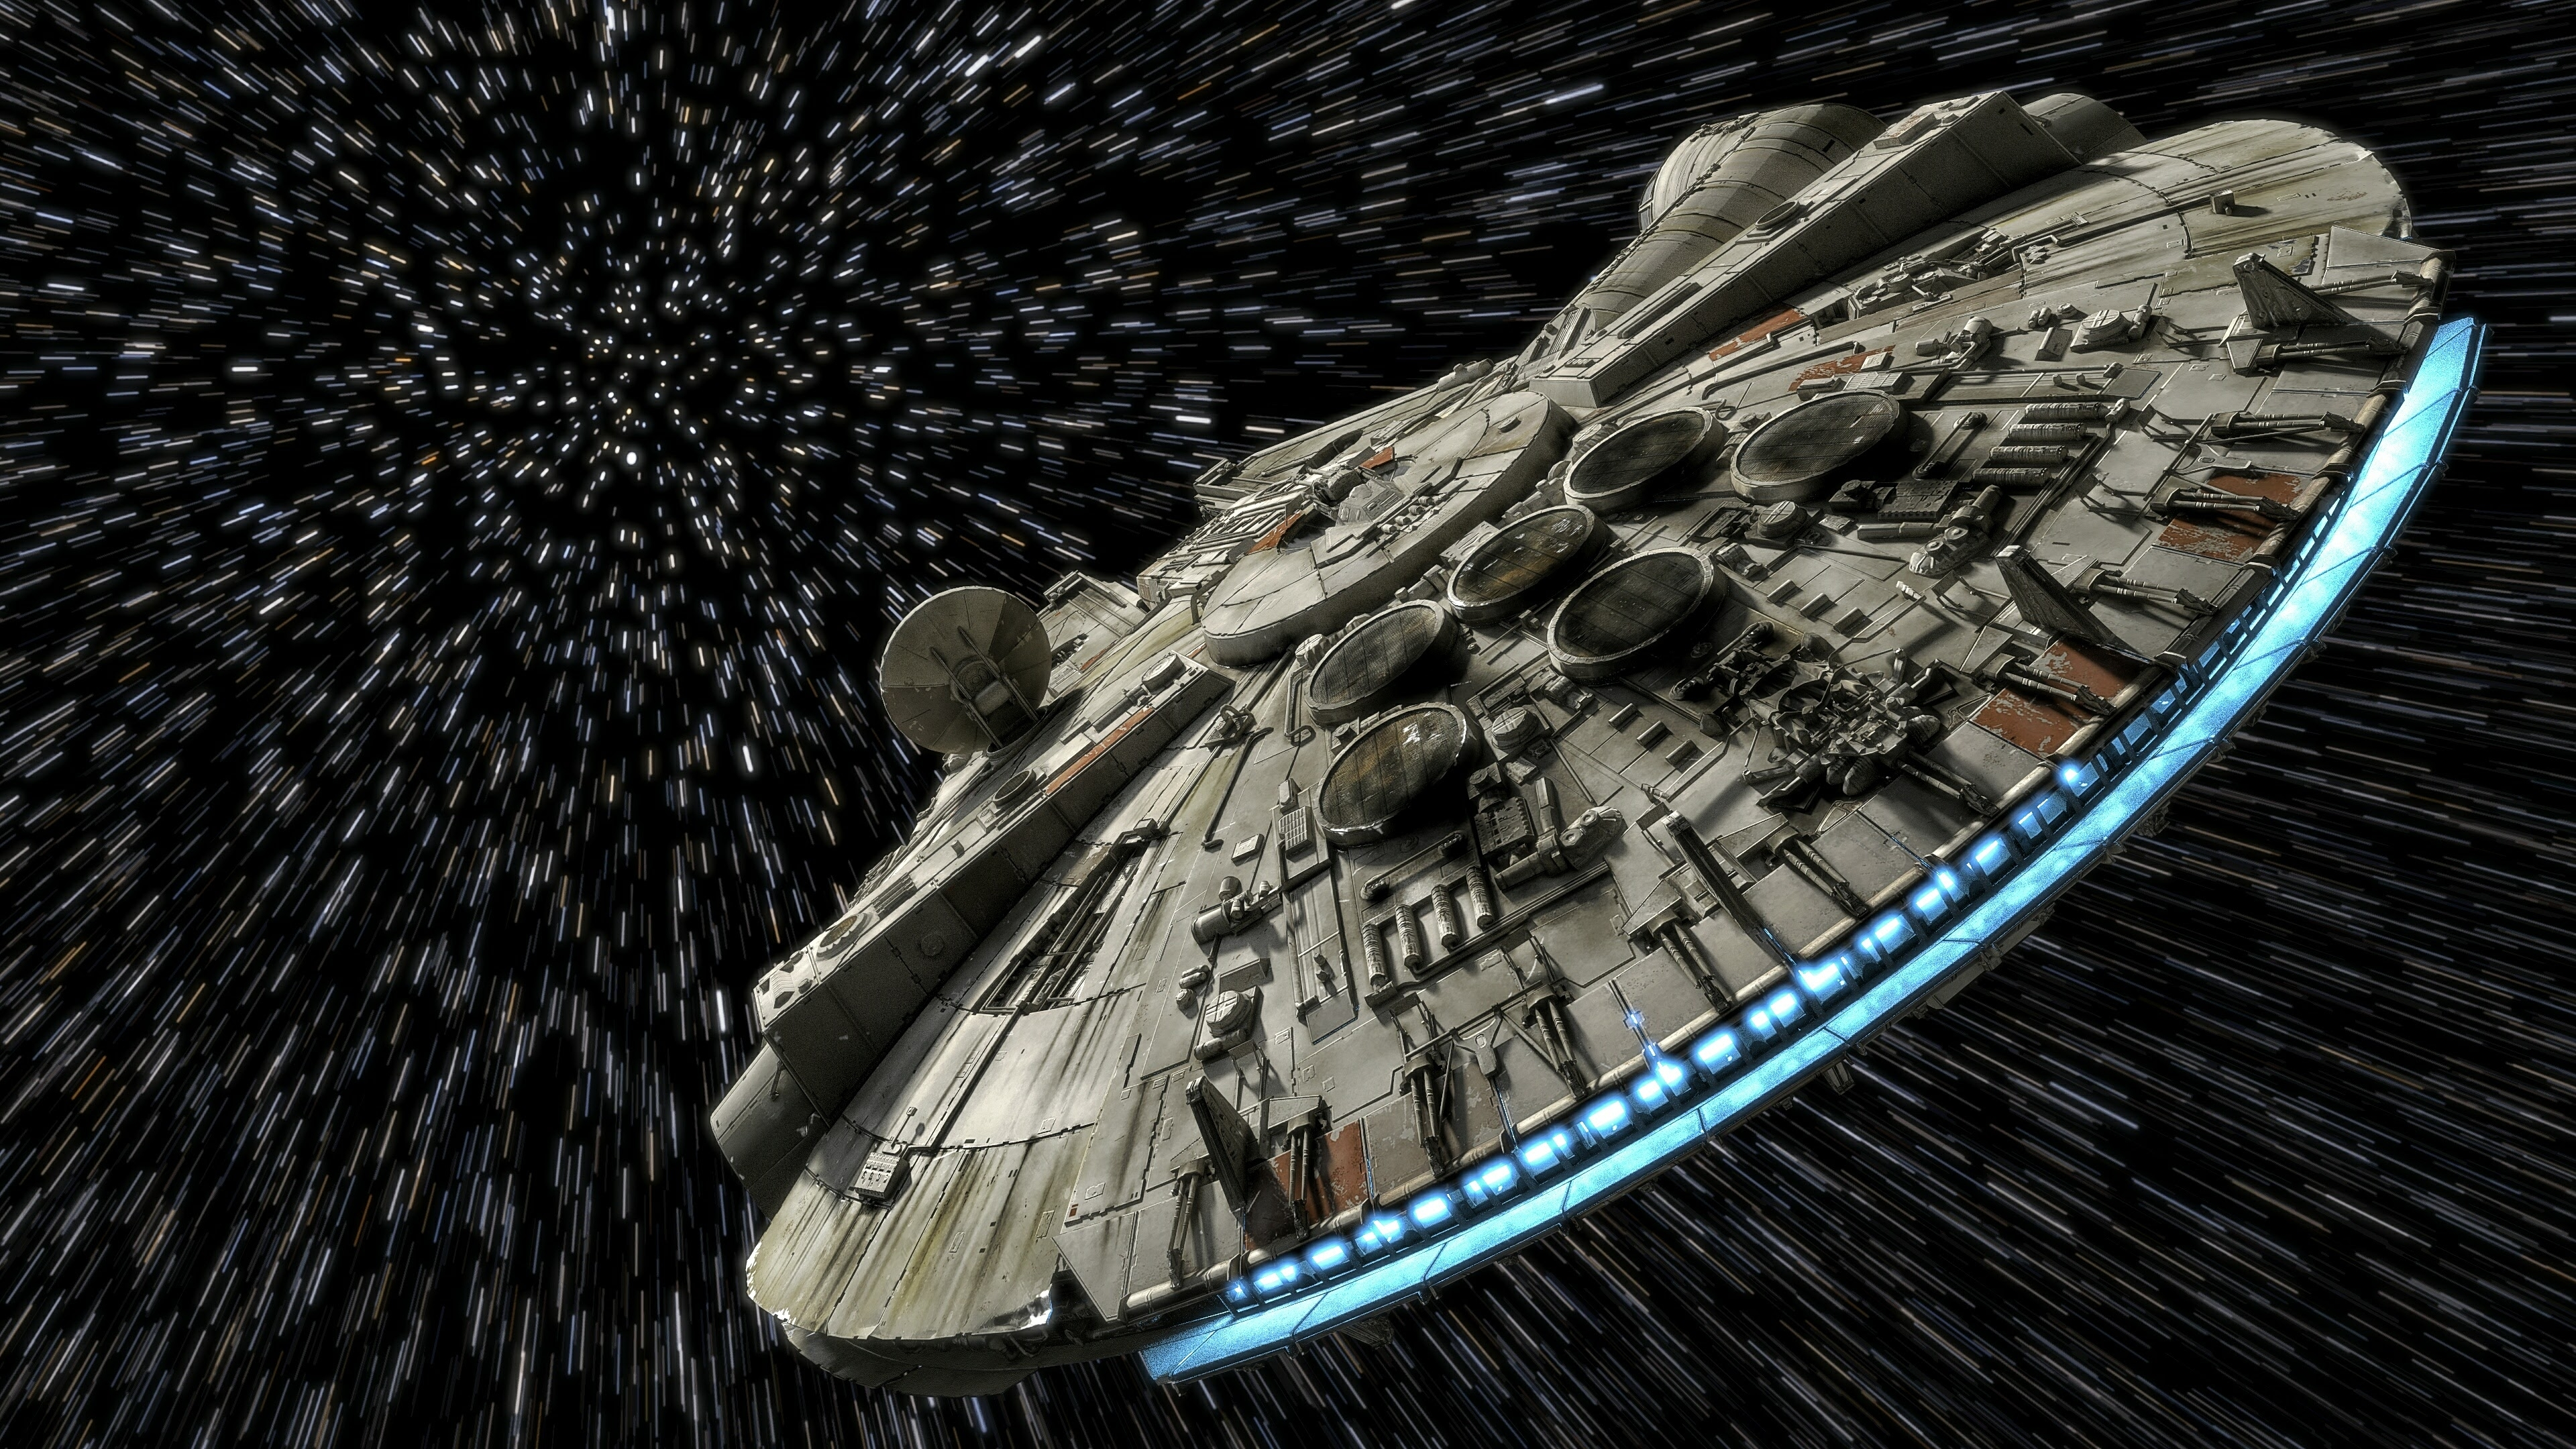 some hi-res star wars wallpapers i made - album on imgur